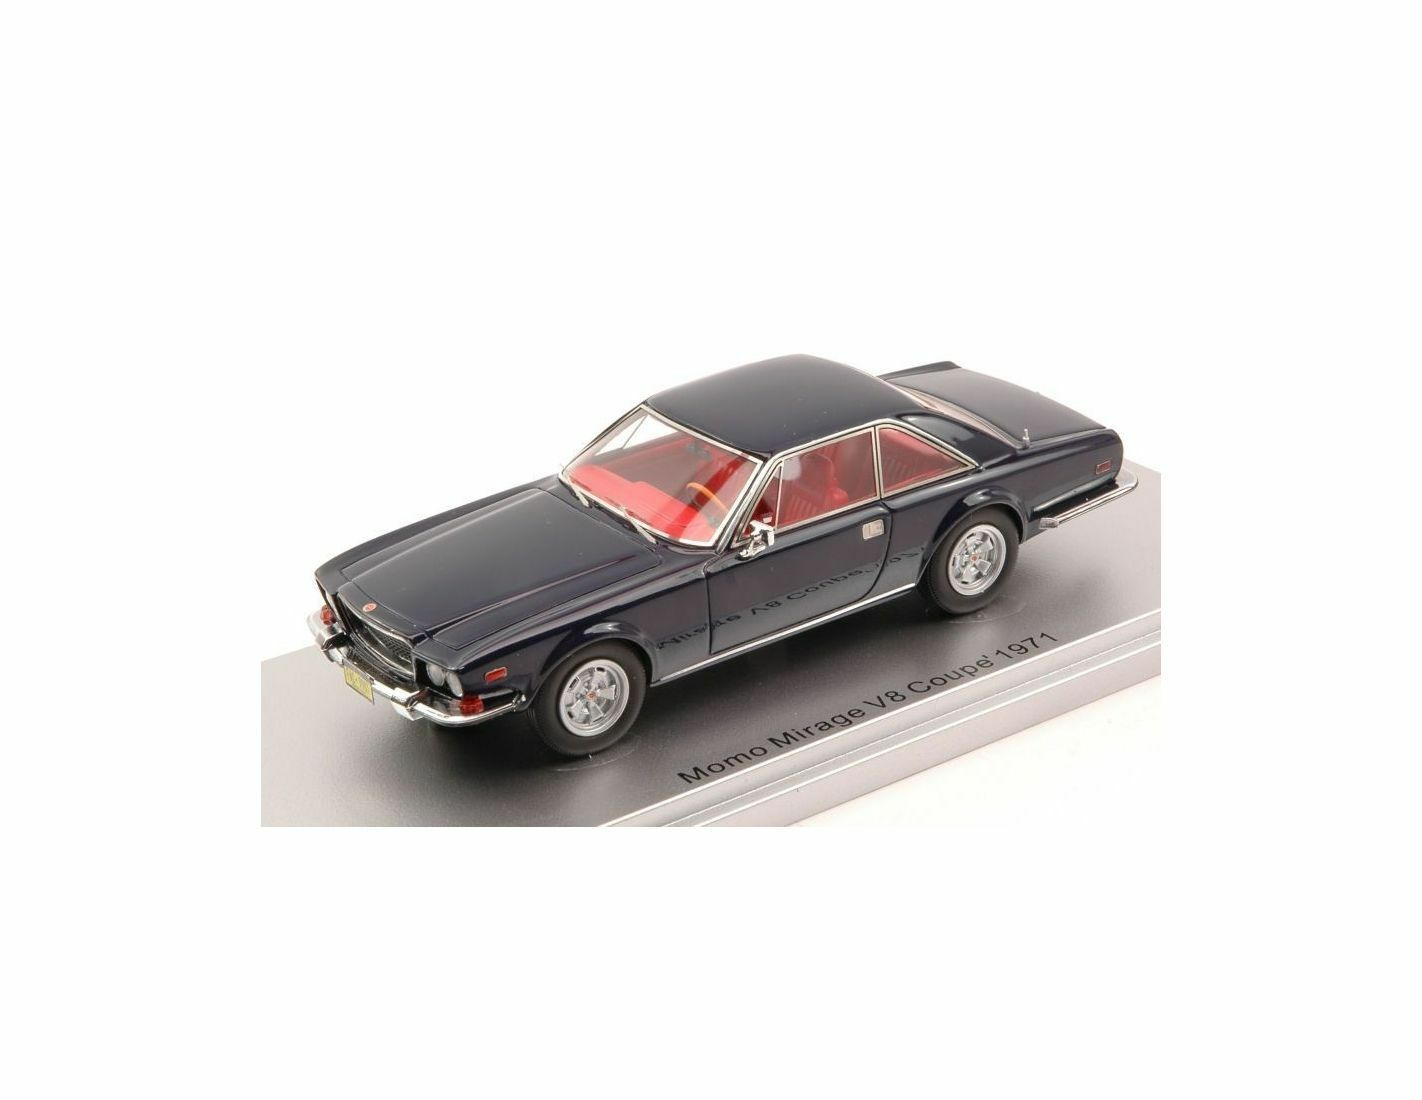 precio mas barato Kess Model KS43033901 MOMO MIRAGE V8 COUPE' 1971 1971 1971 NIGHT azul 1 43 Modellino  estar en gran demanda